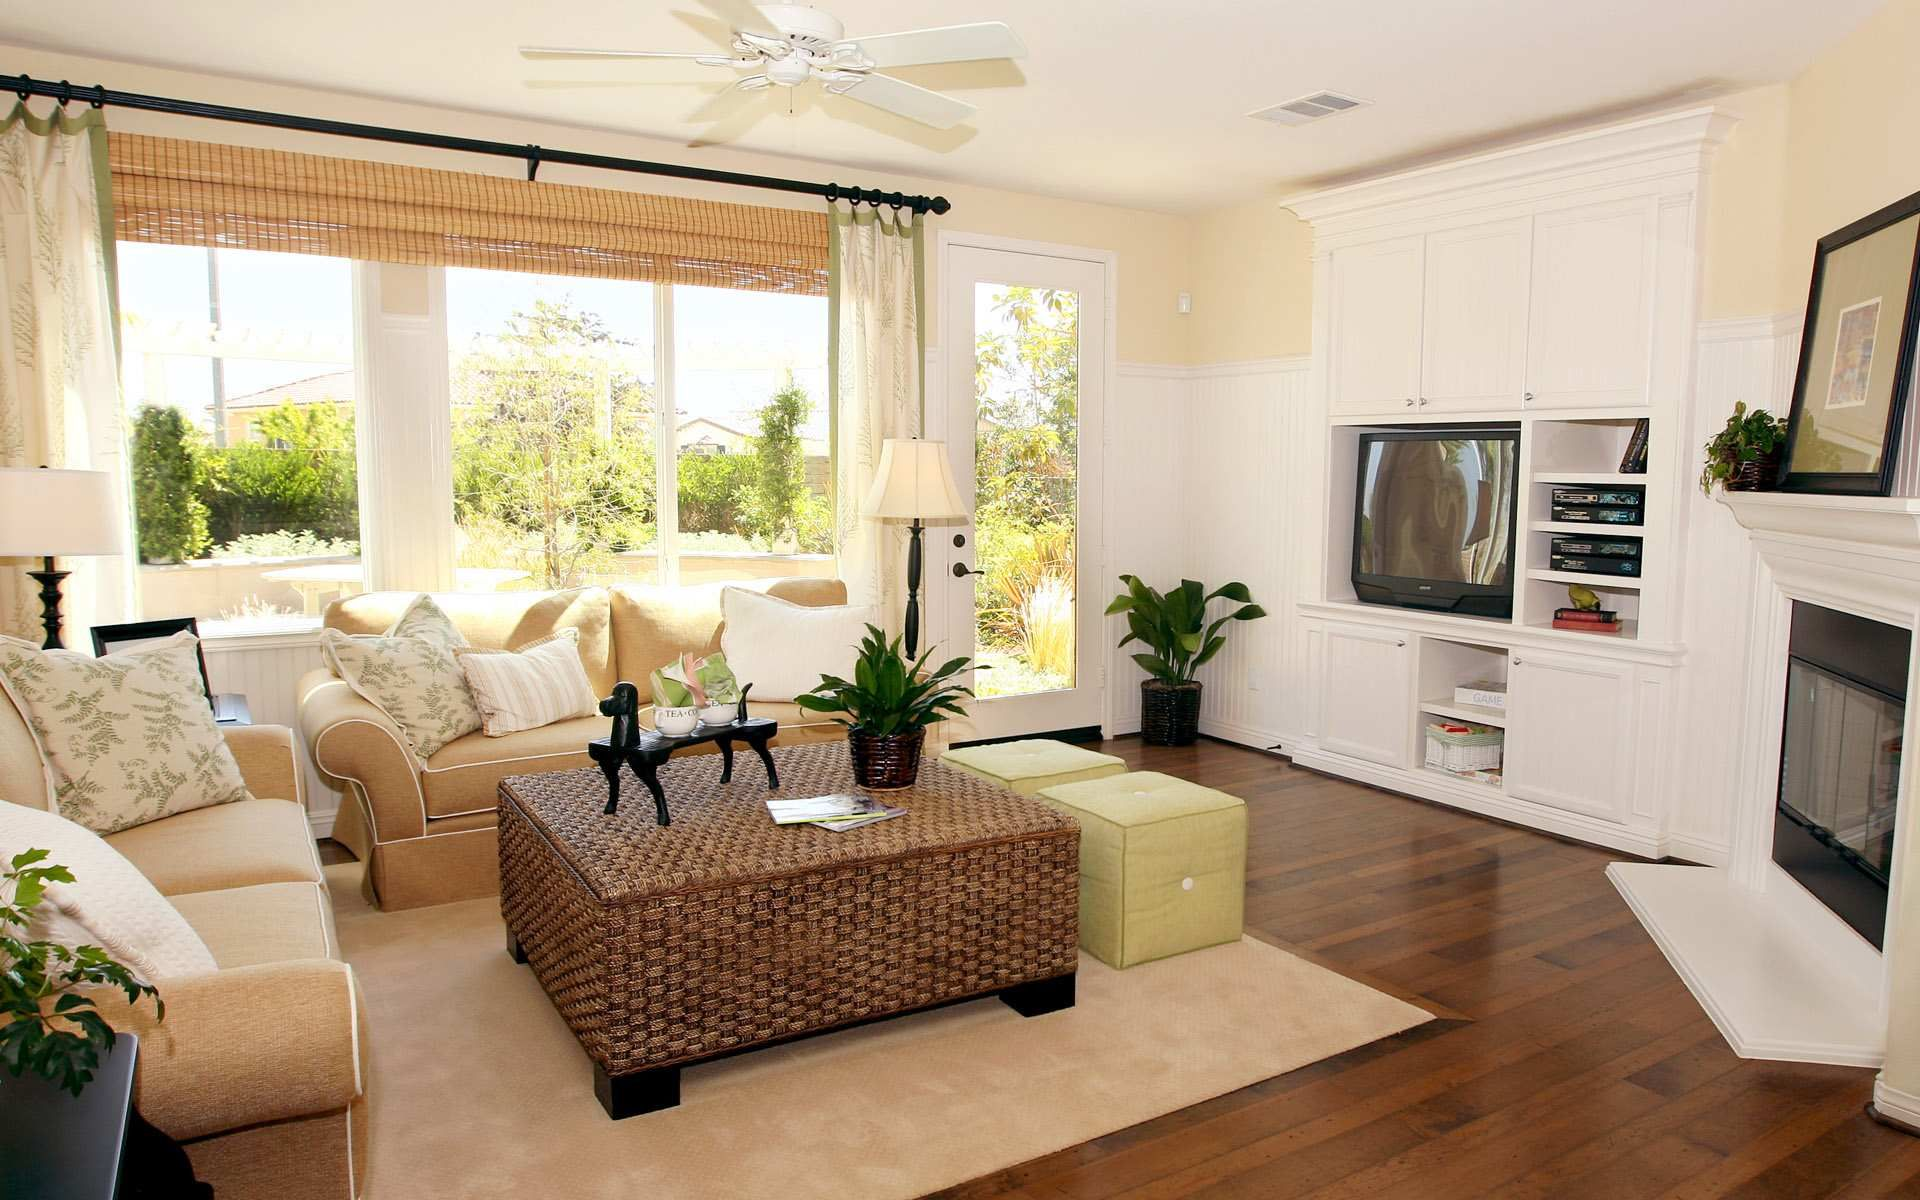 Living Room Interior Designs 19 Ideas For Your Apartment Decorating  Living Rooms Living Room